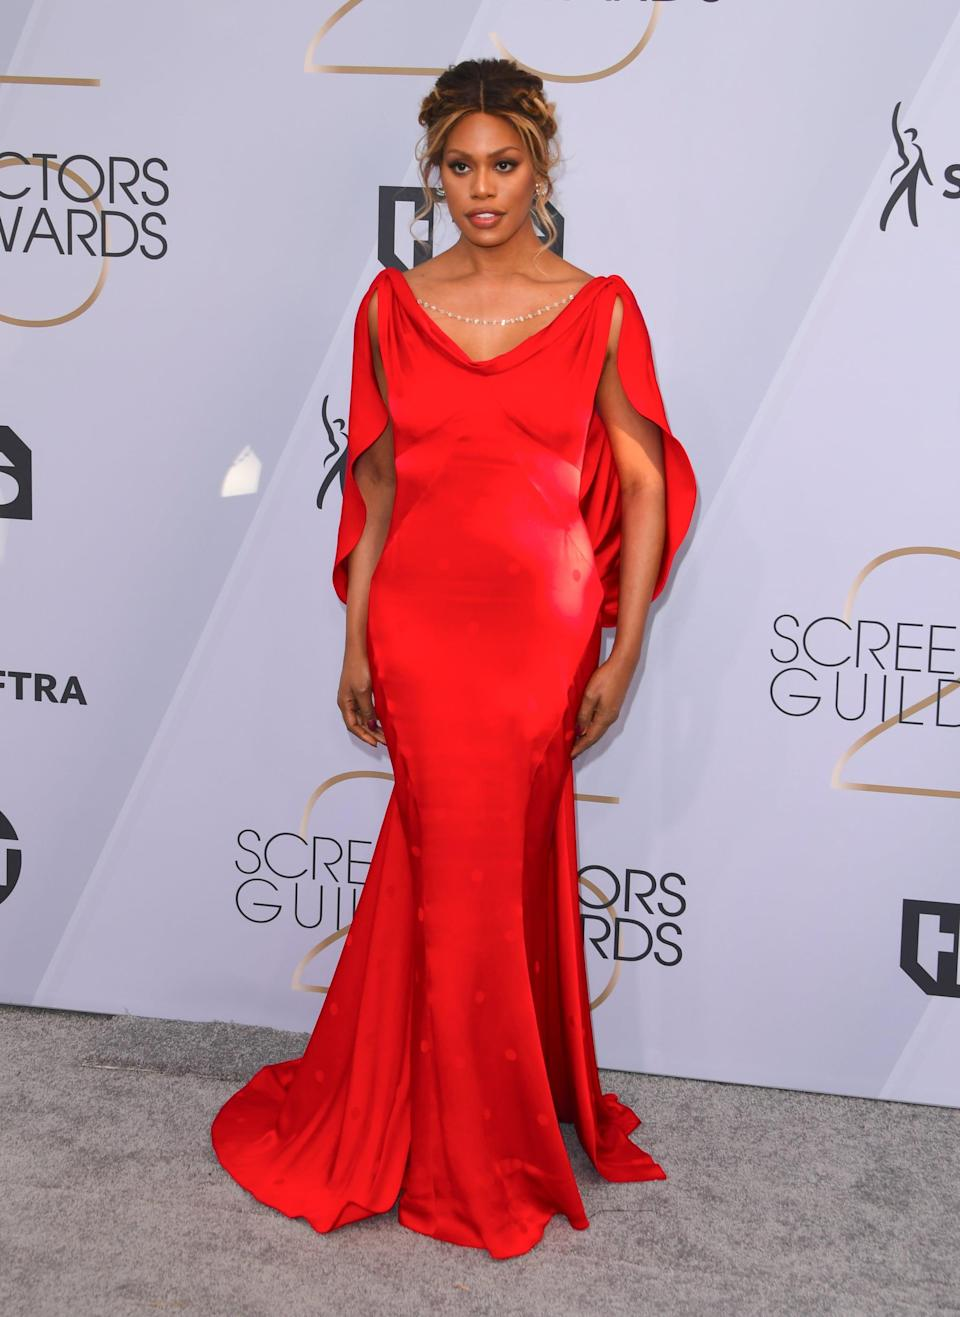 <p>Wearing a red Zac Posen gown with jewels on the back, Yves Tufenkjian jewelry, Kenneth Cole shoes, and a Judith Leiber clutch.</p>